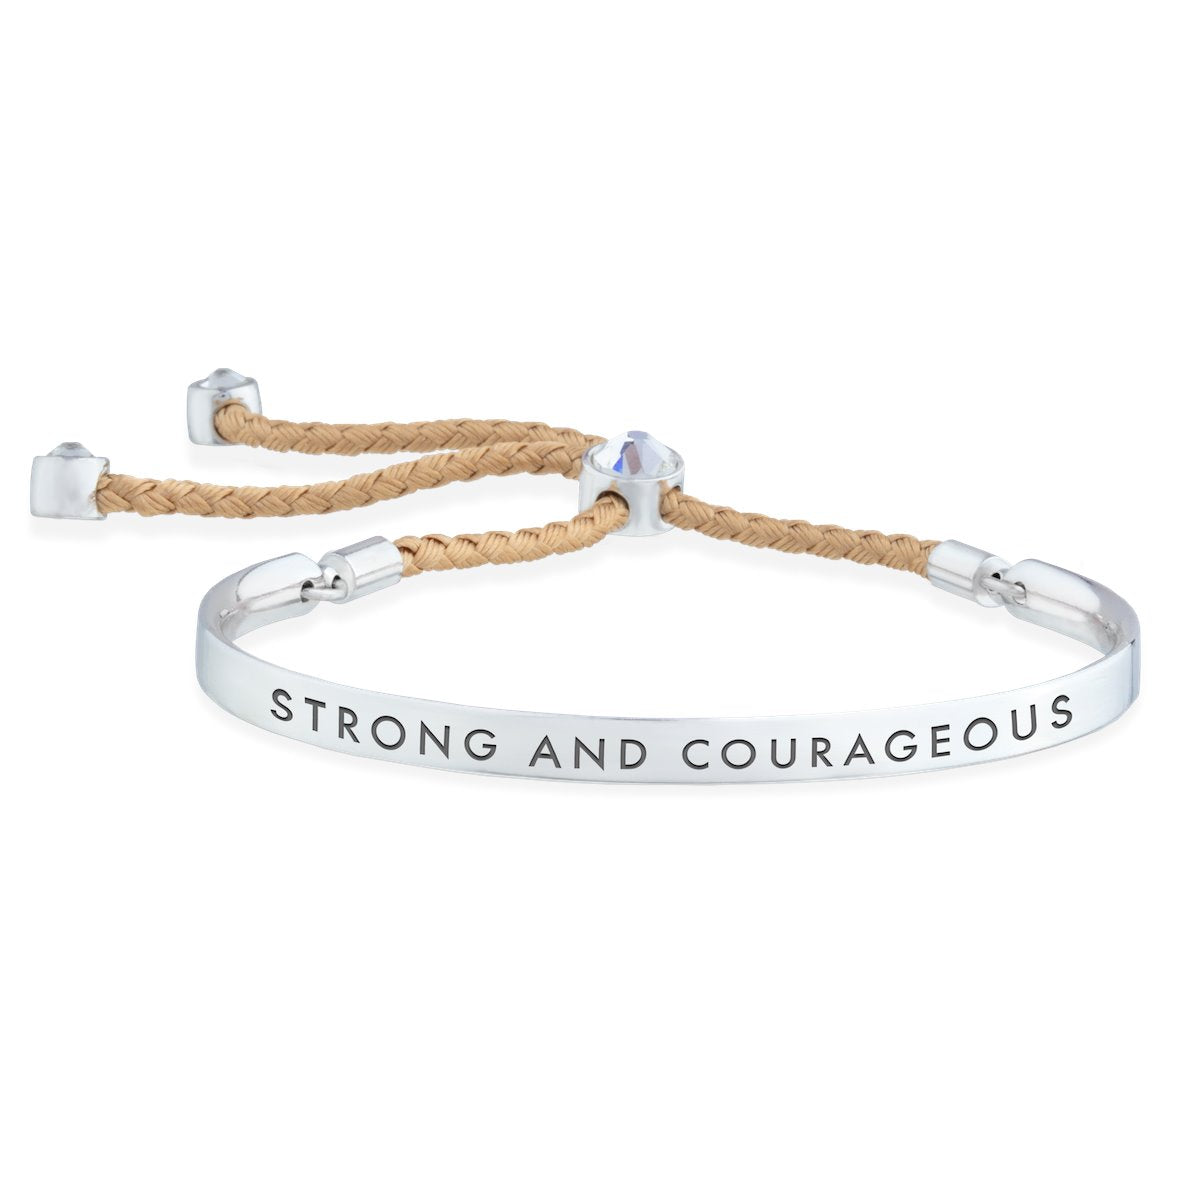 Strong and Courageous – Words of Empowerment Bracelet forevercrystals